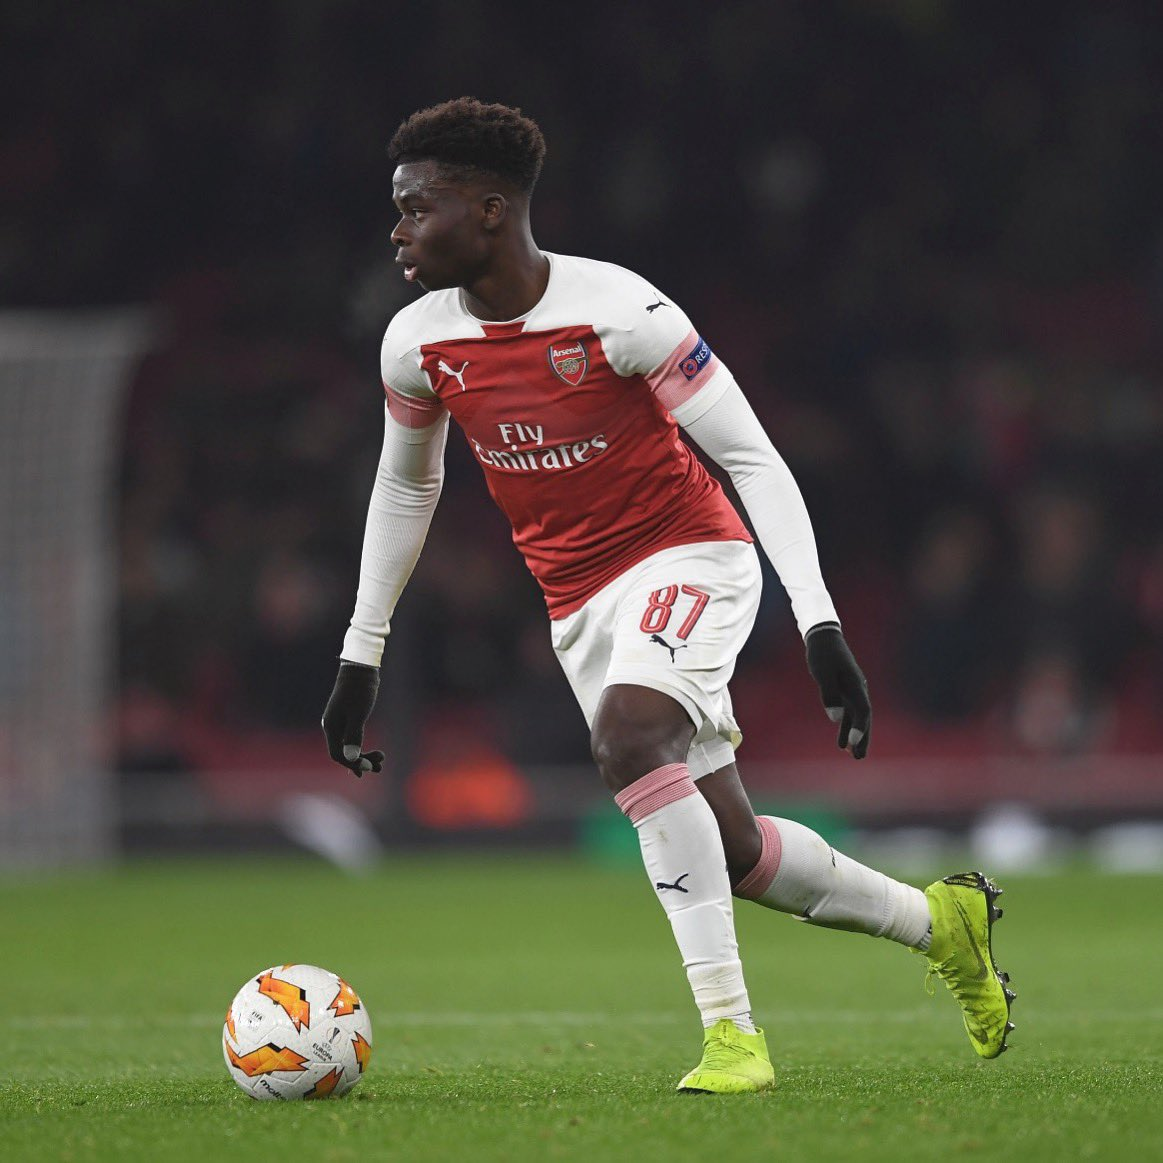 Dream come true to play at the Emirates tonight! A proud moment for me and my family. Also good to get the win @arsenal 🙏🏿 #coyg